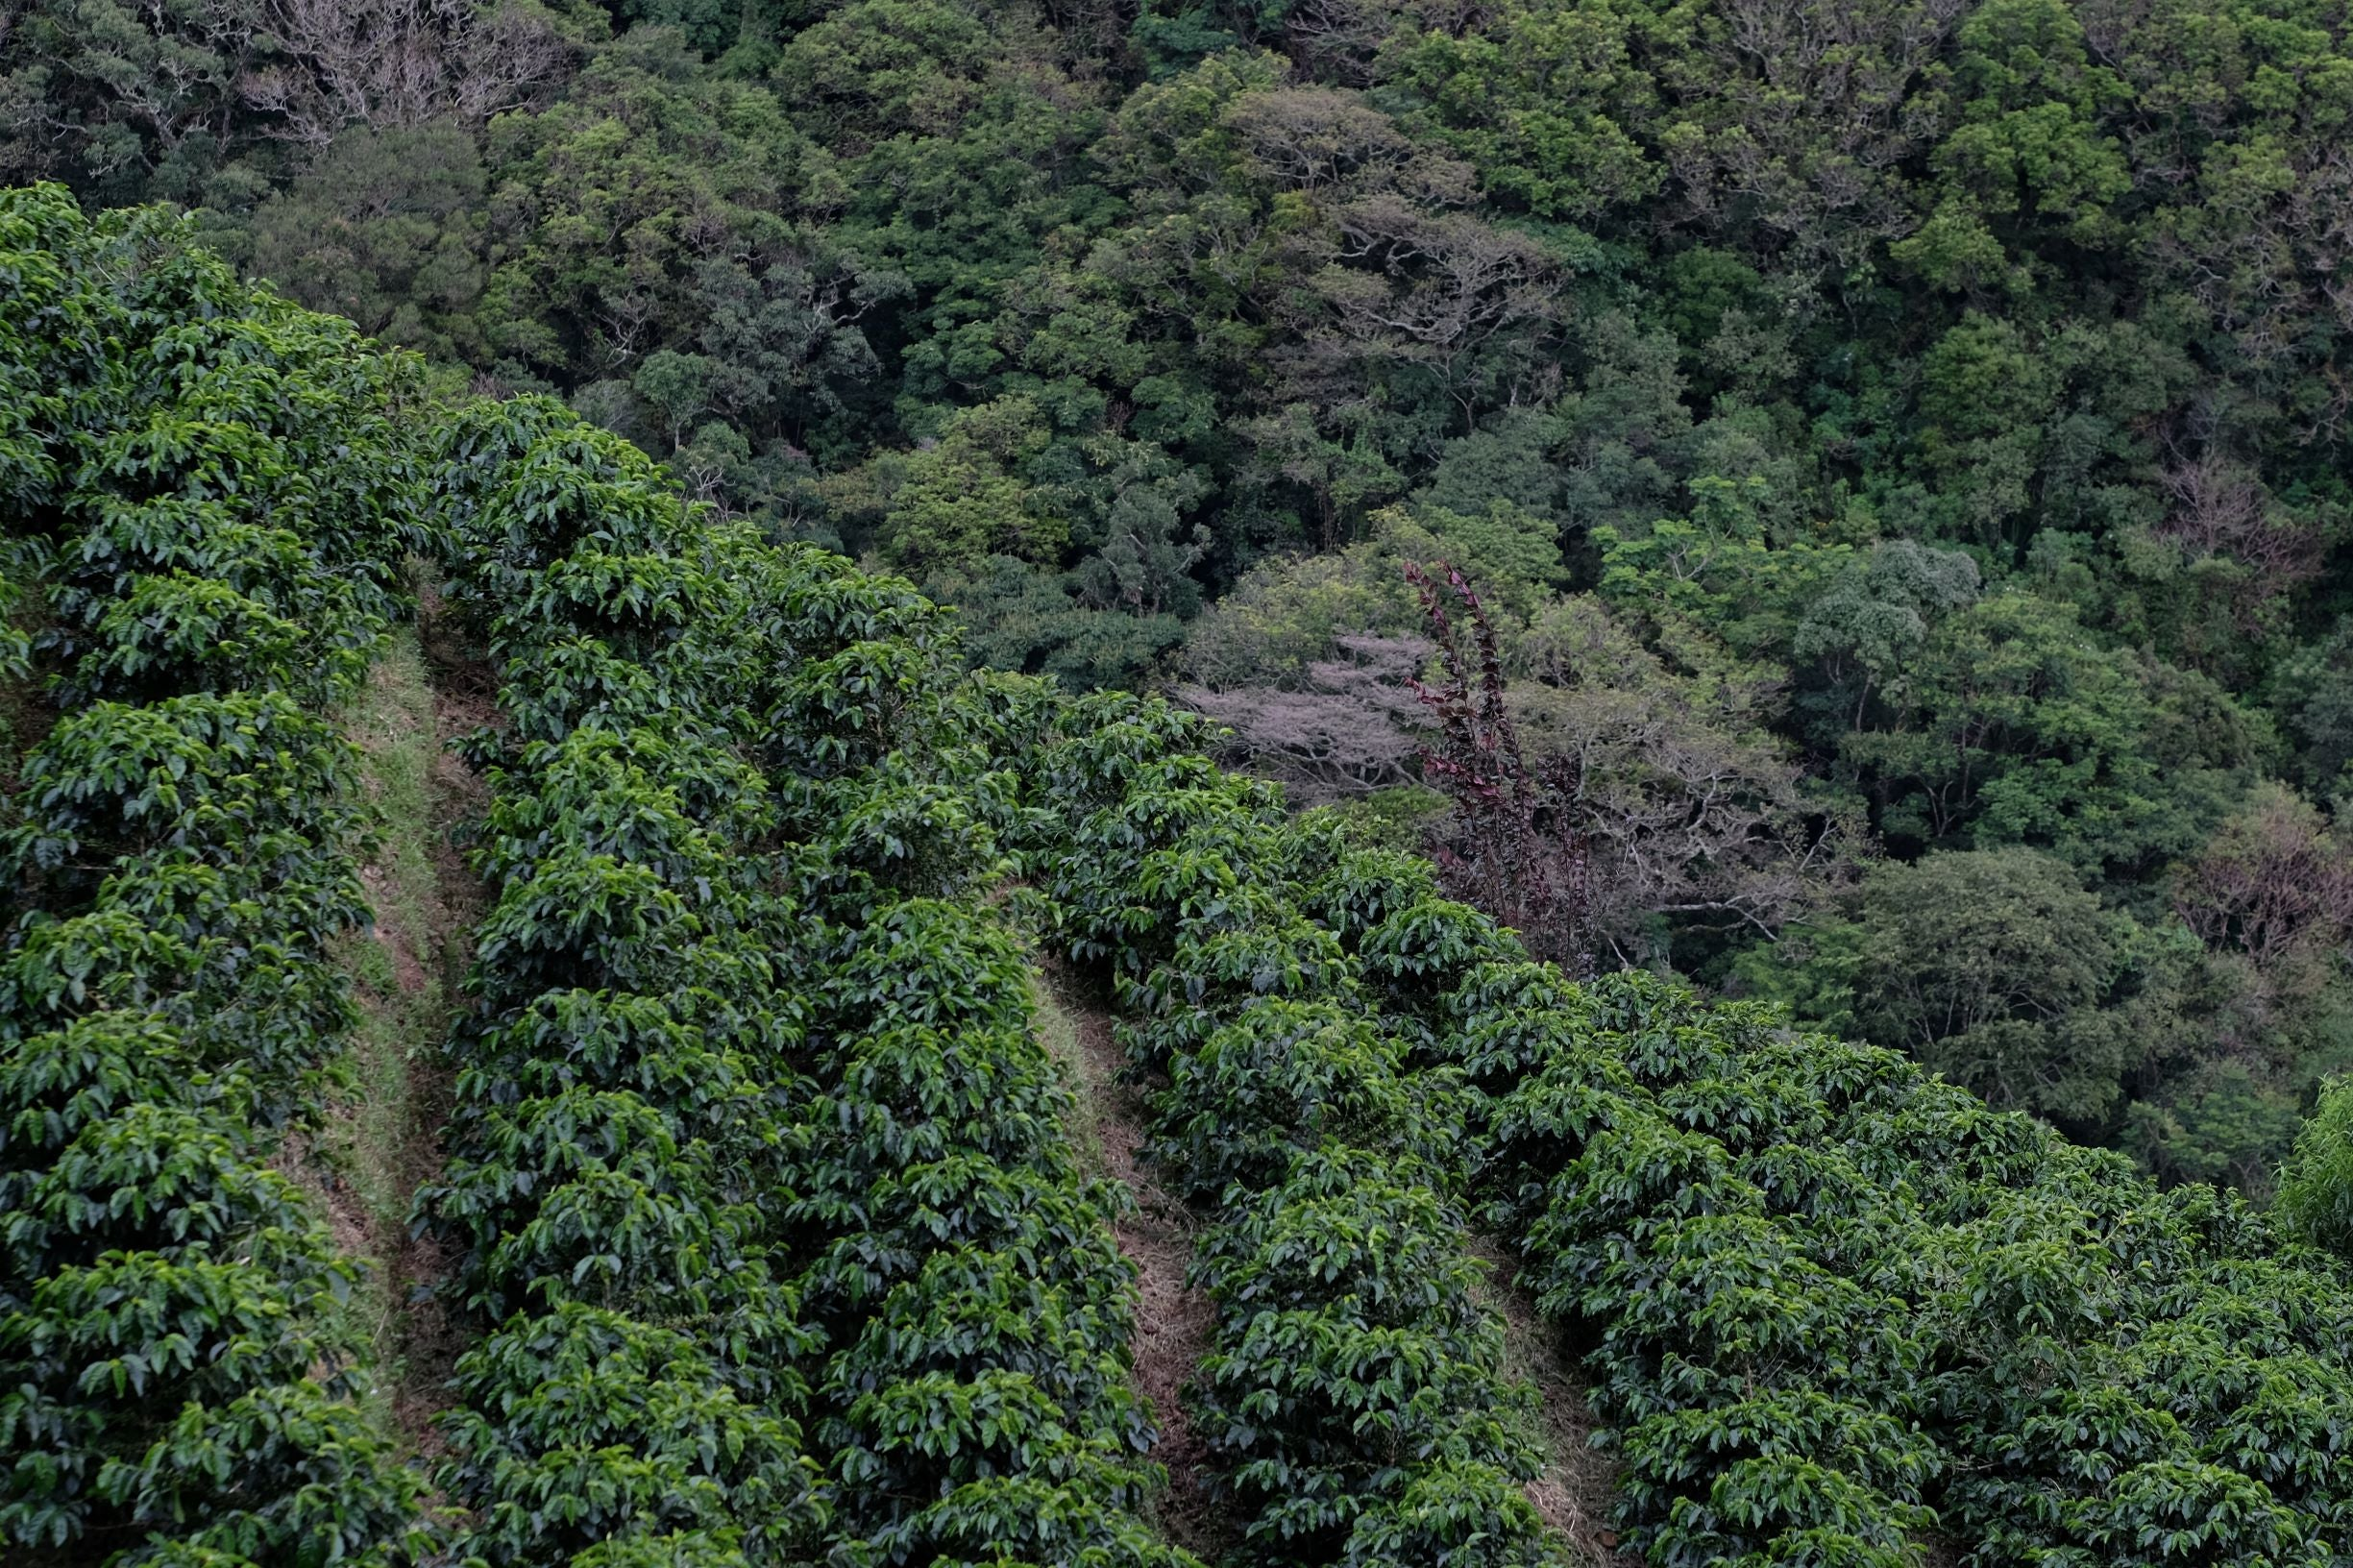 Coffee cultivation and forest preserve on Costa Rica farm